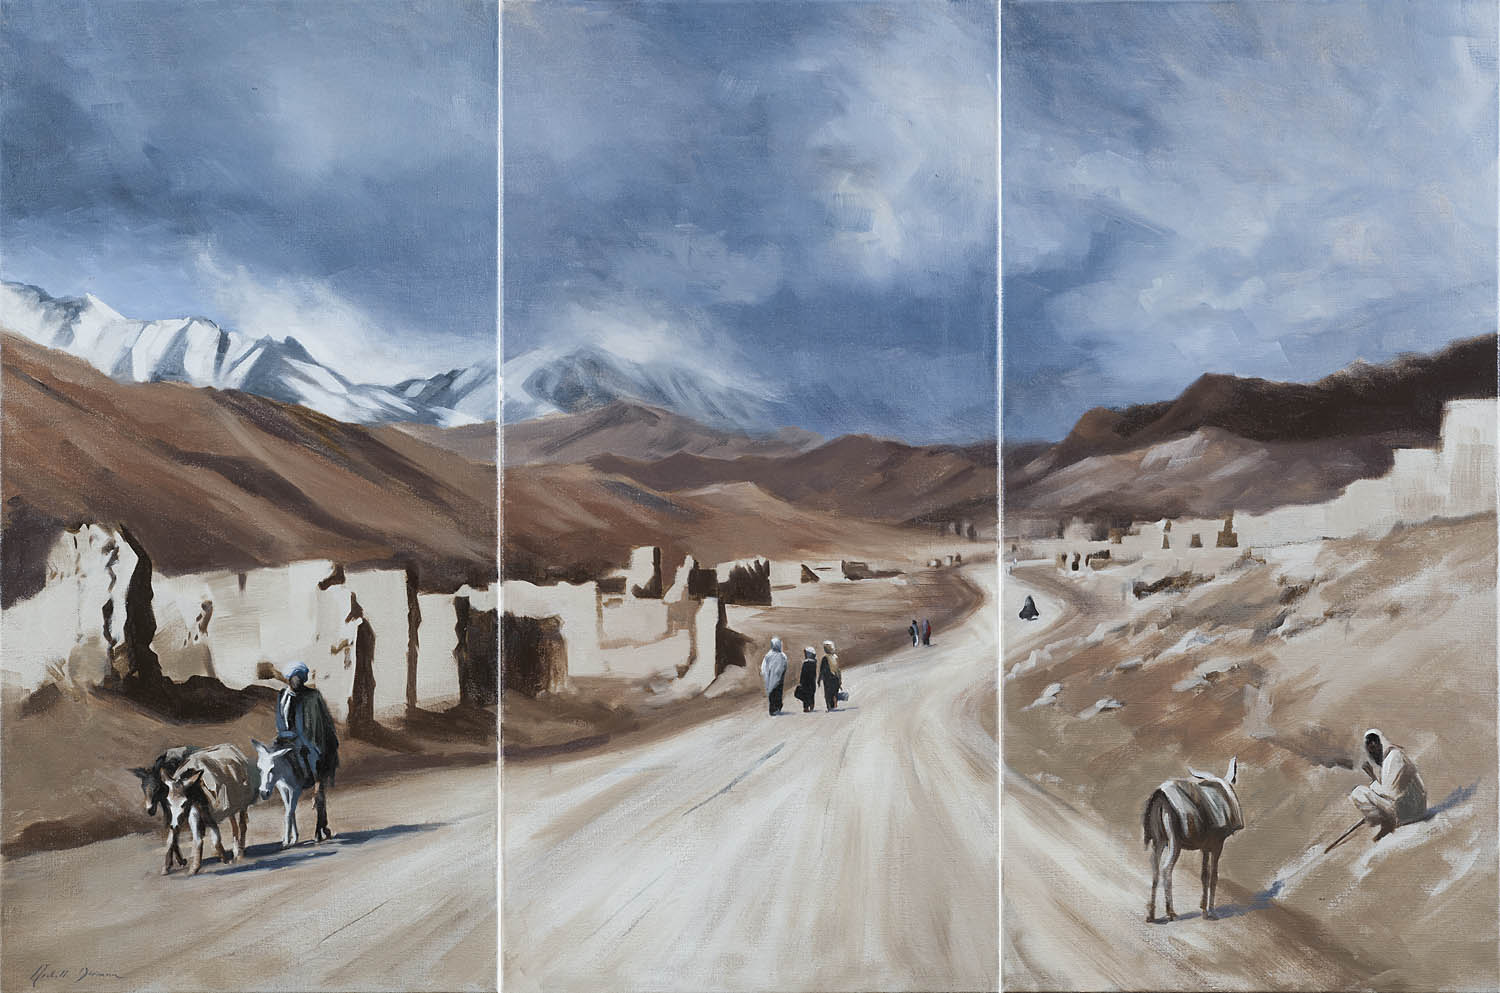 The Road, 2010, Afghanistan